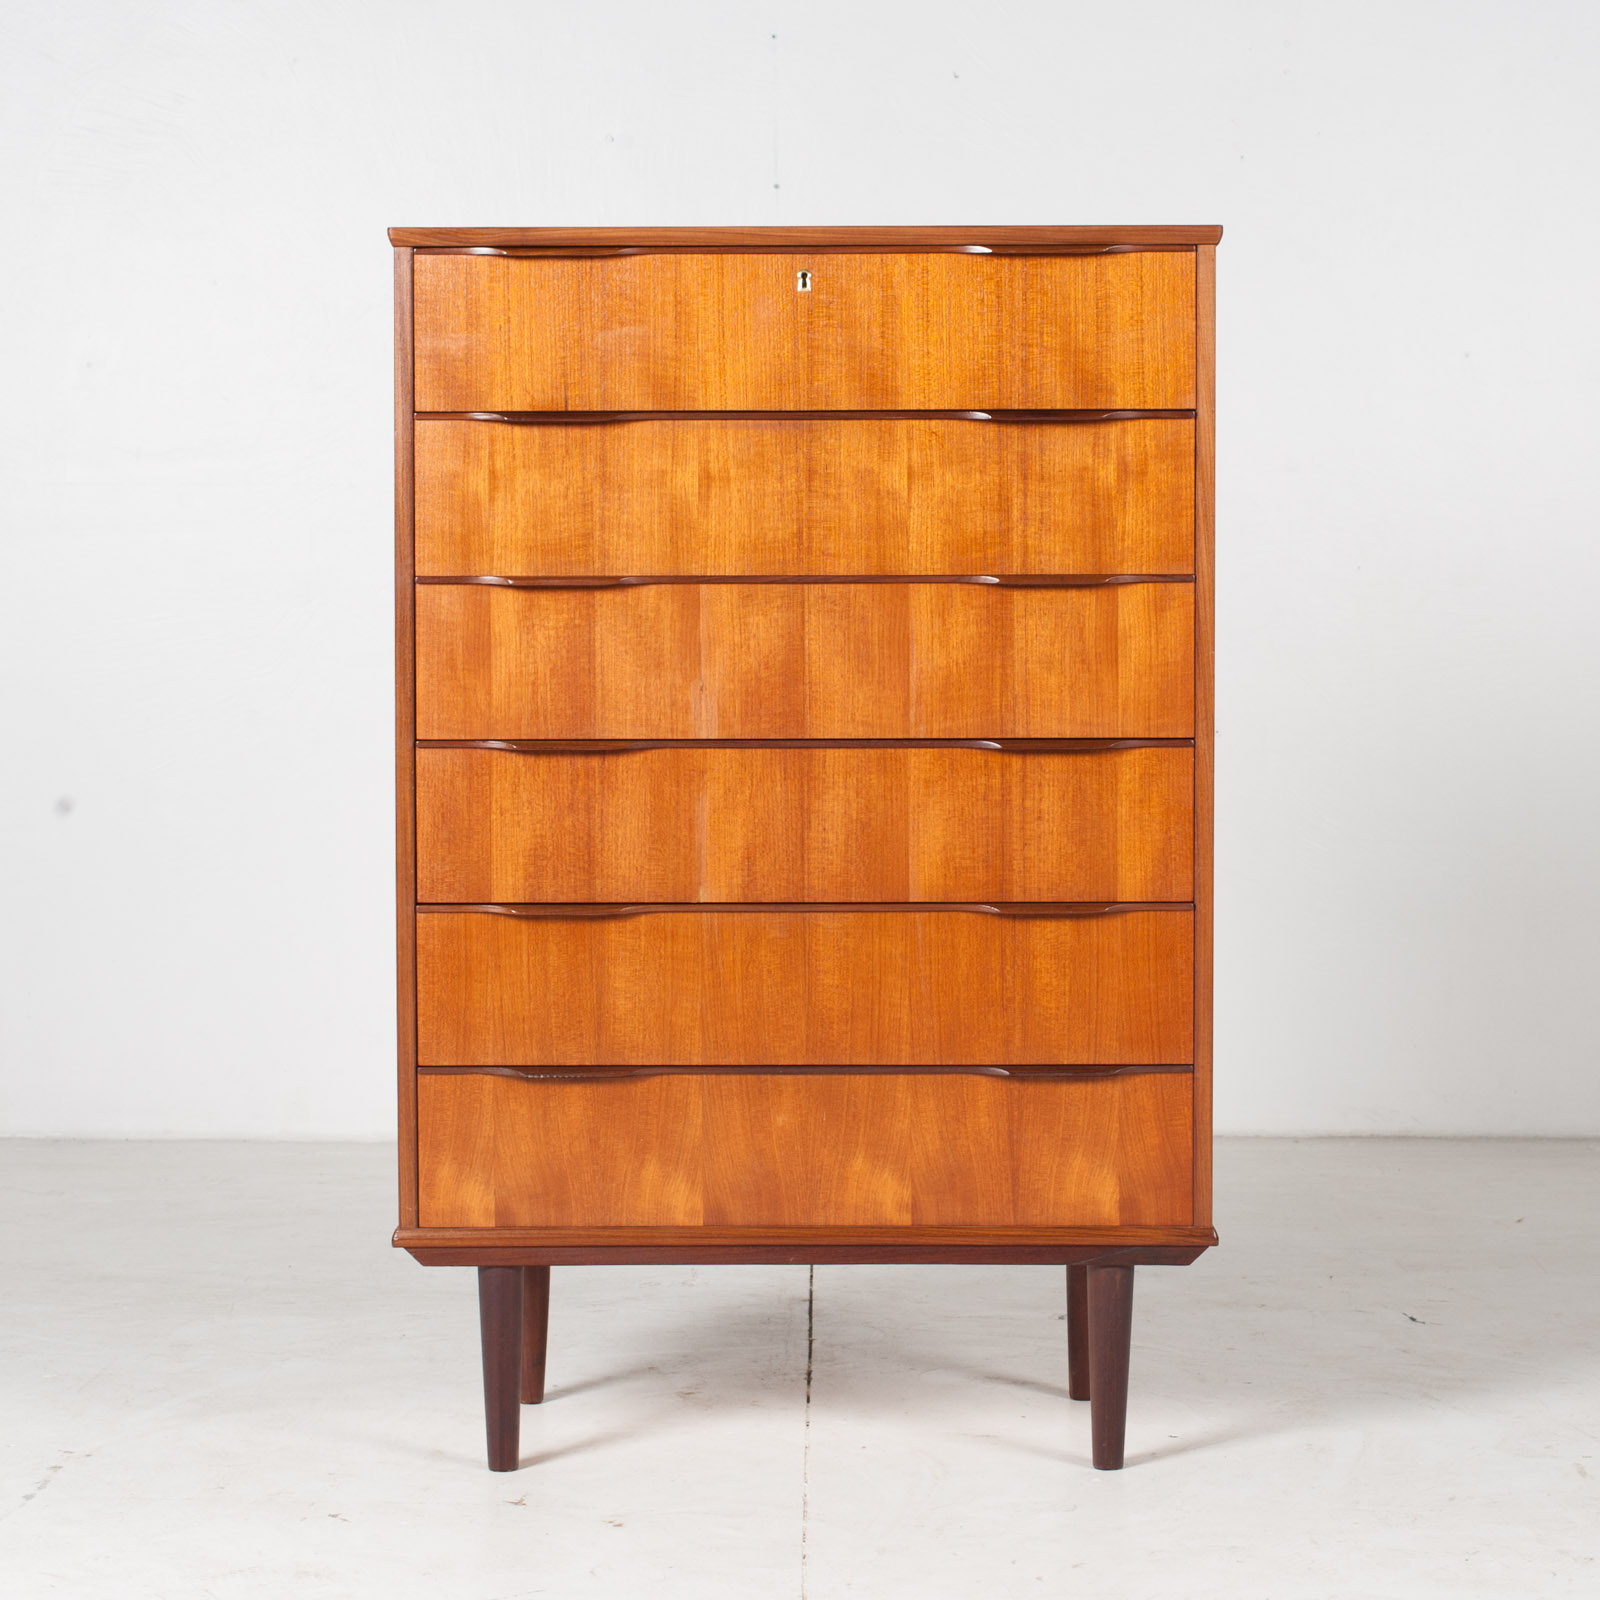 Deep Chest In Teak With Six Drawers And Lipped Handles, 1960s, Denmark1